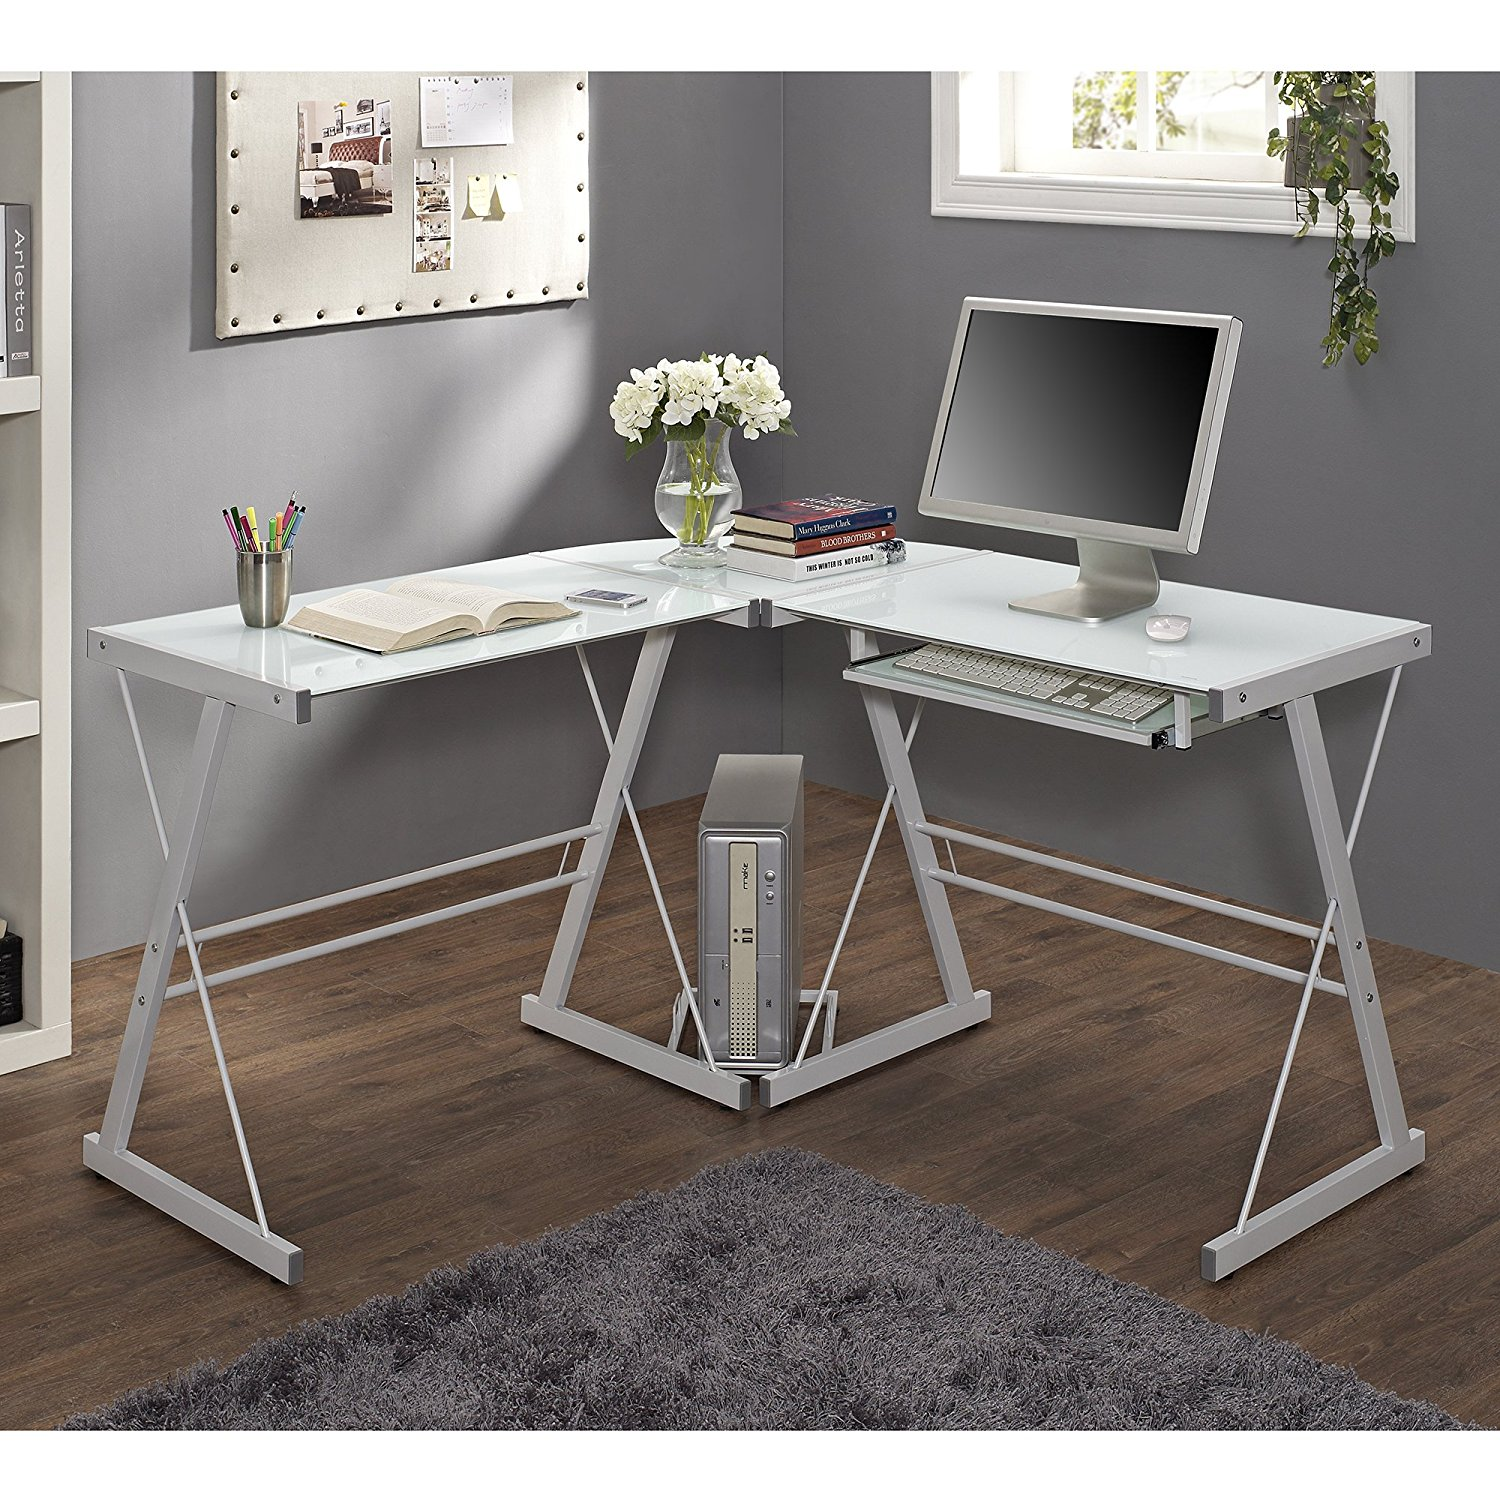 Details about Walker Edison Glass Top with Steel Base Corner Computer Desk  in White, D43W43